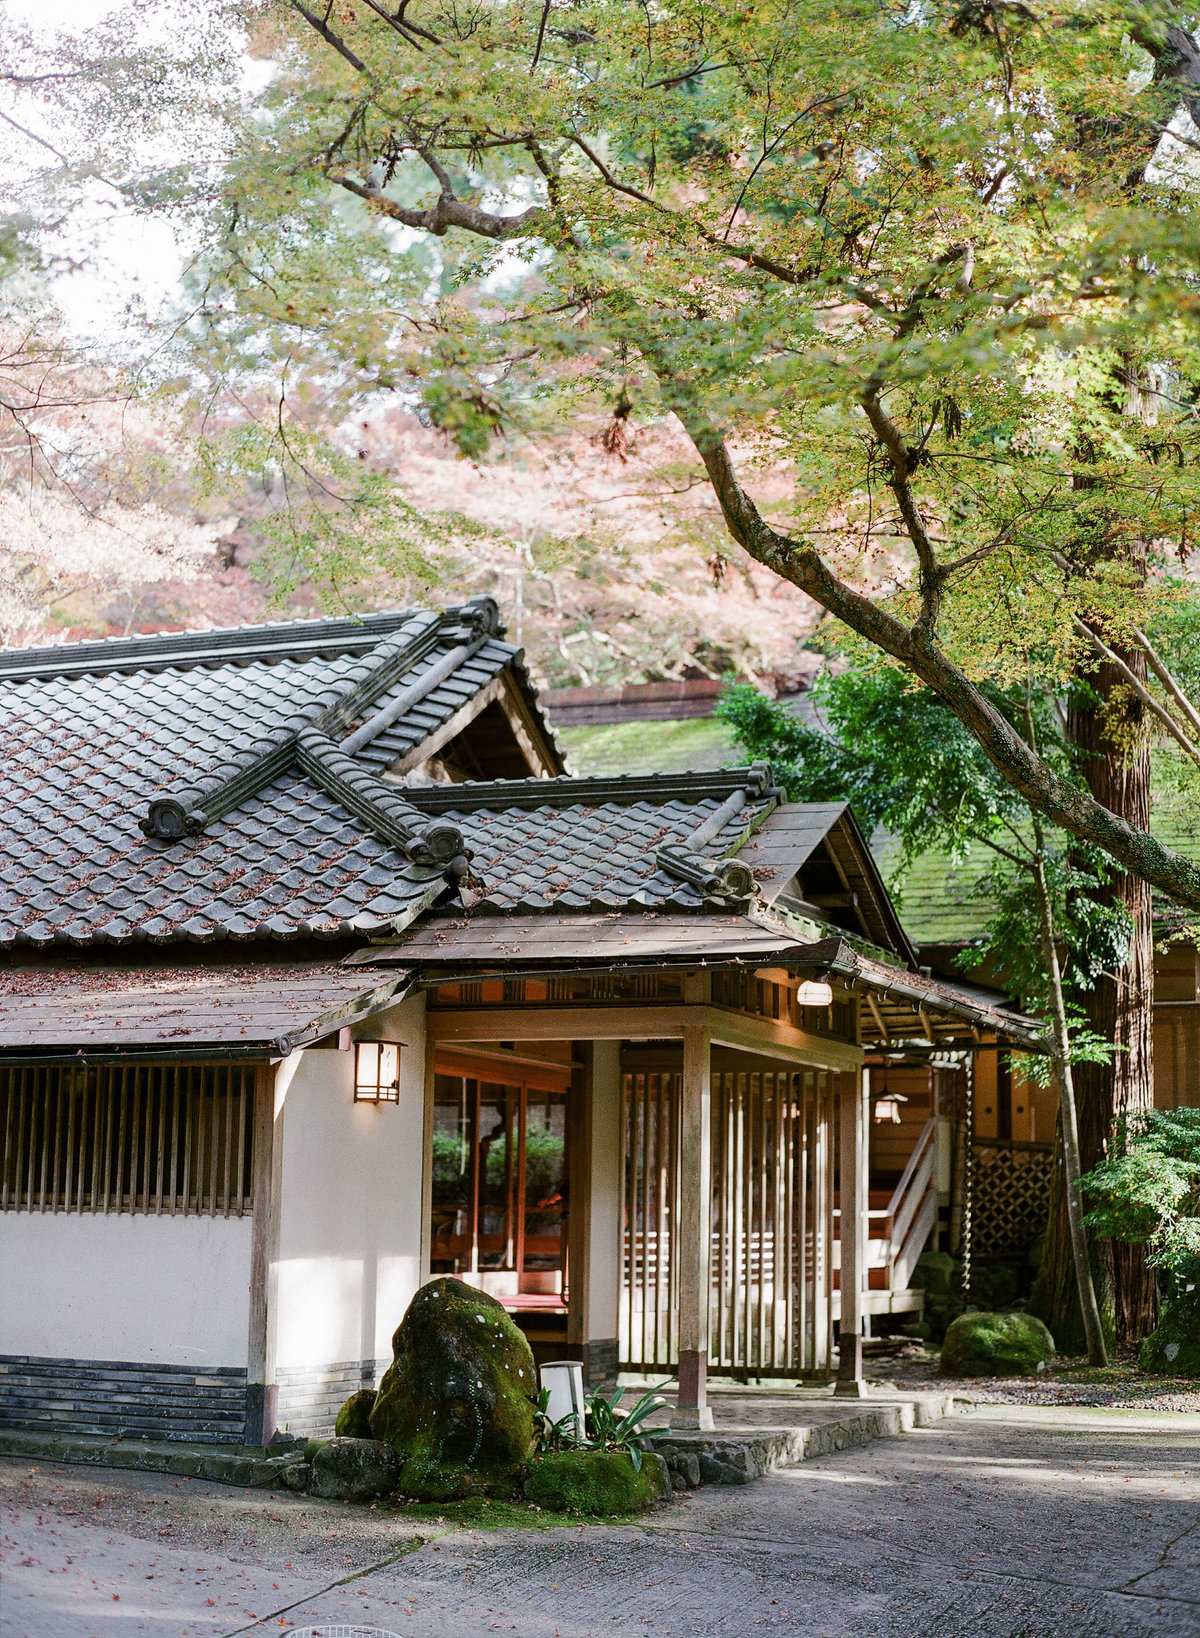 26-KTMerry-weddings-japanese-venue